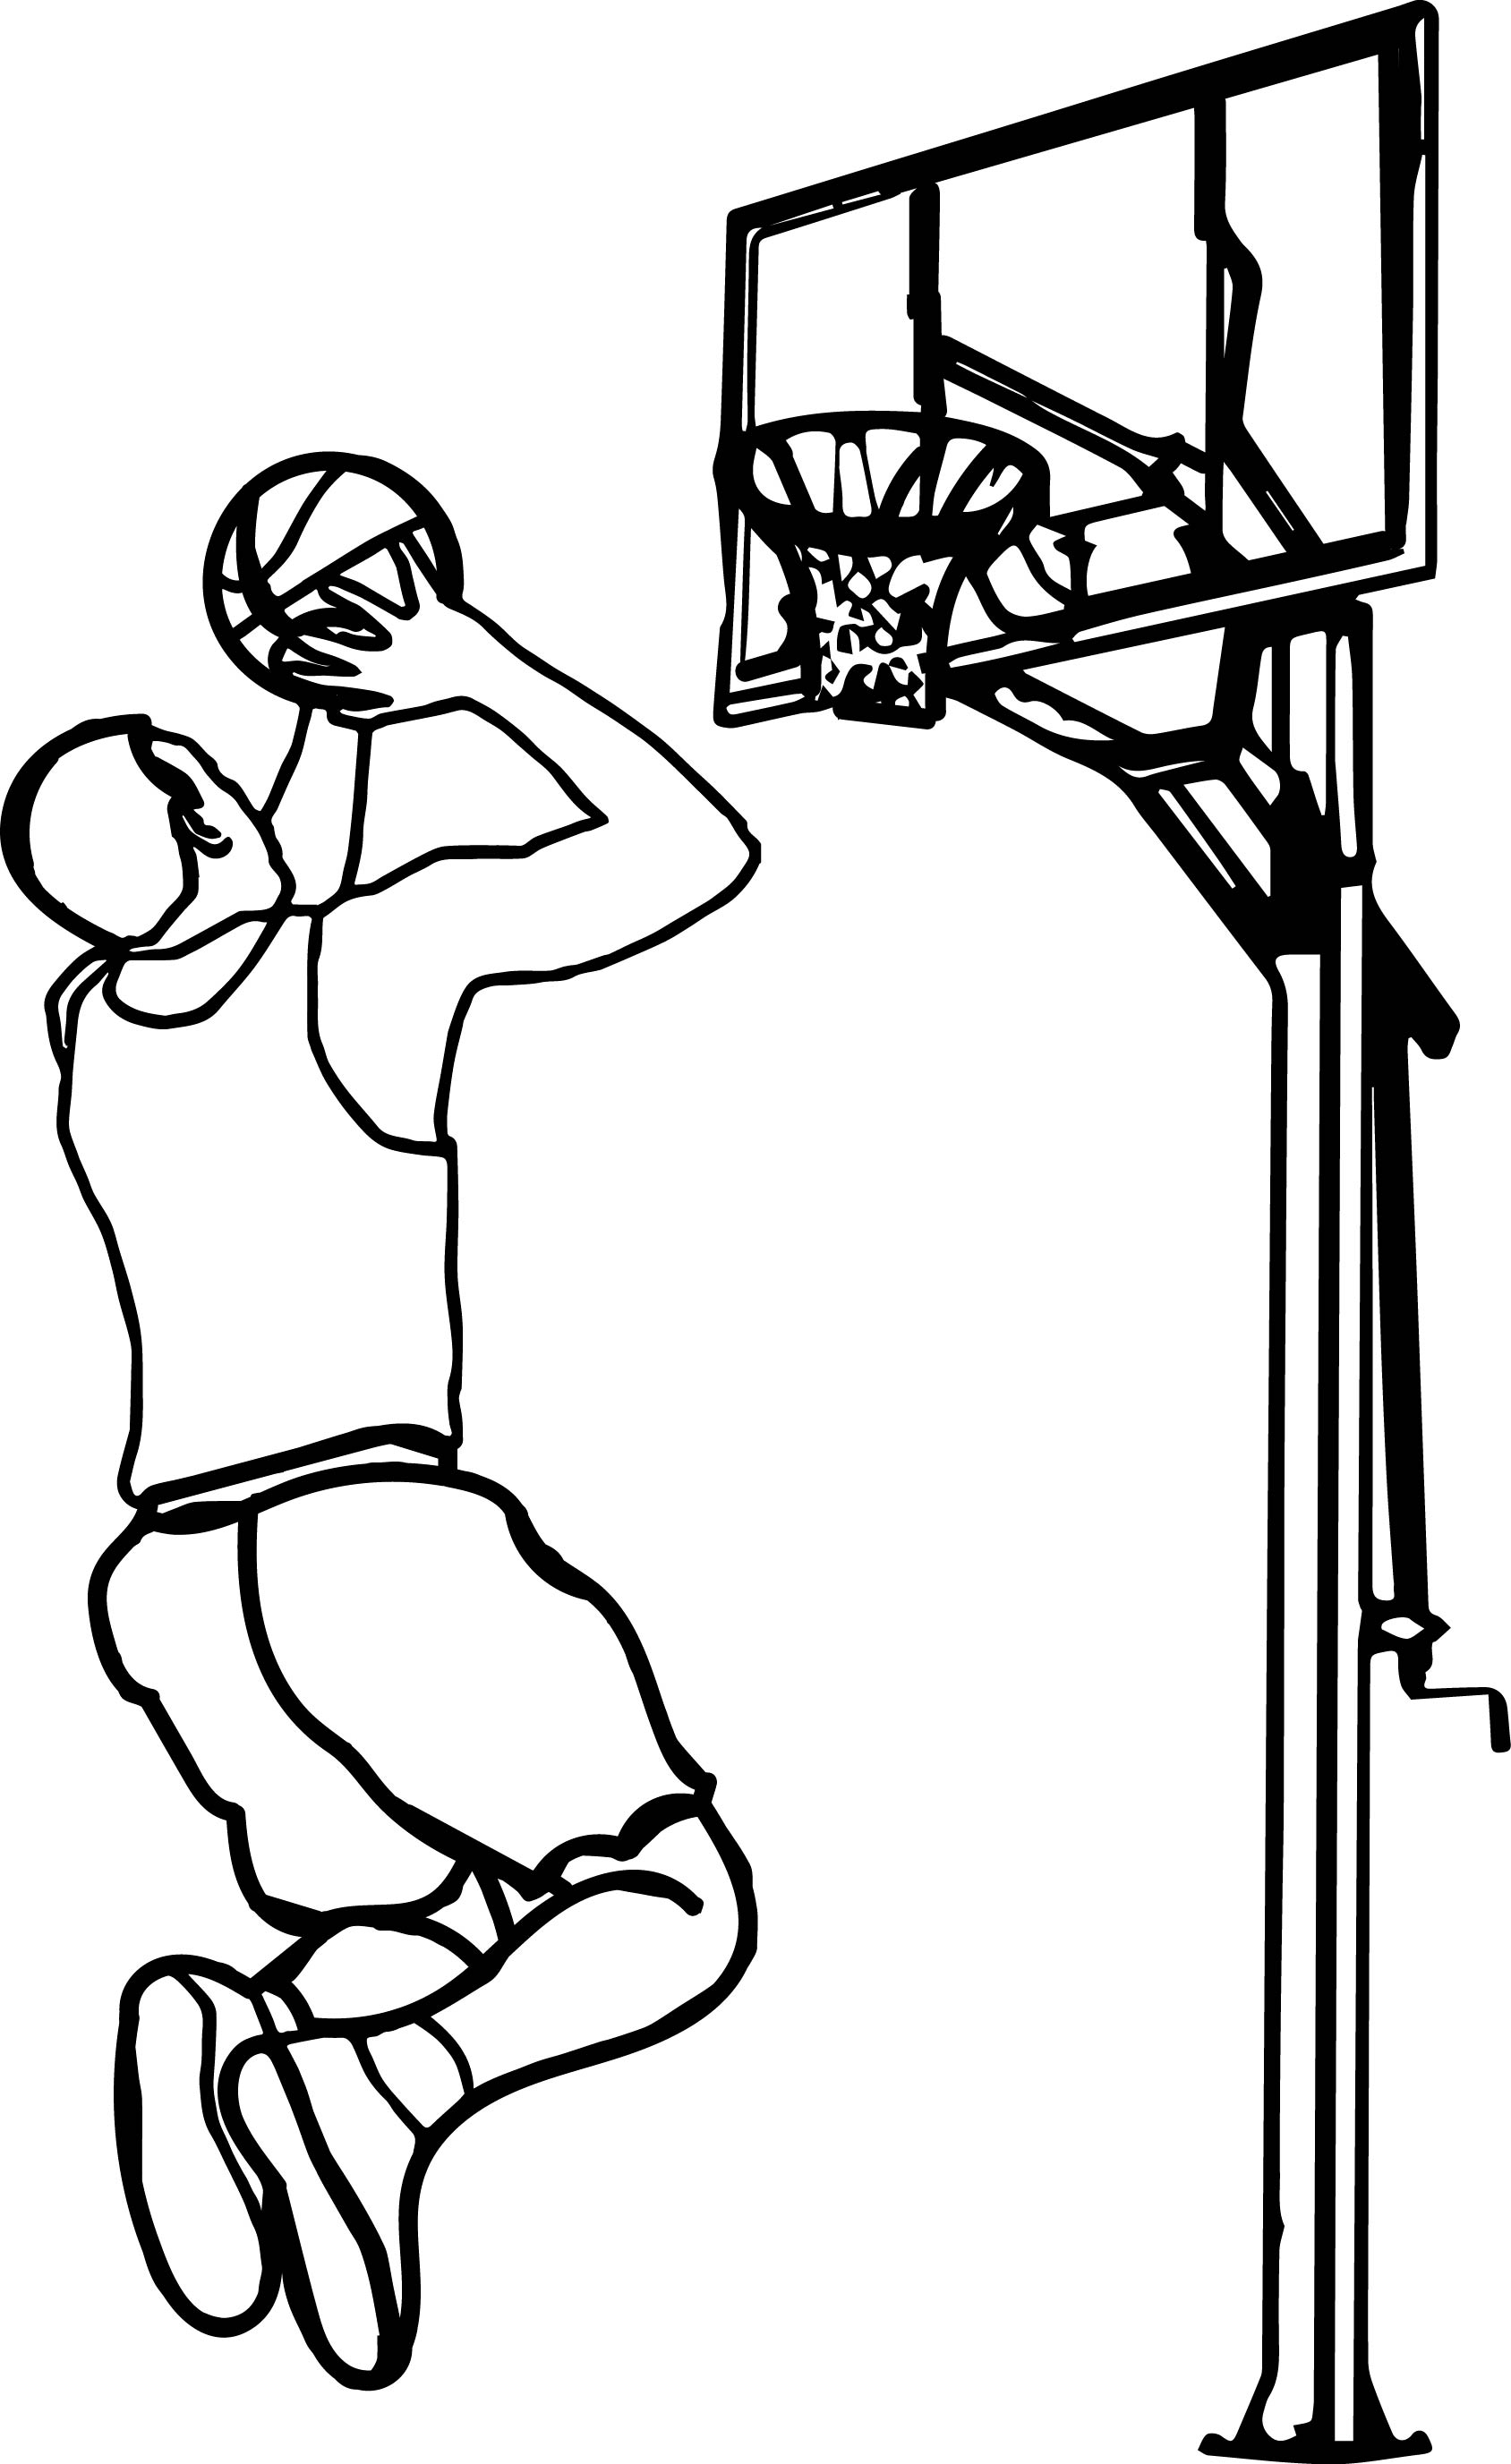 Basketball Clipart Black And White Amp Basketball Black And White Clip Art Images